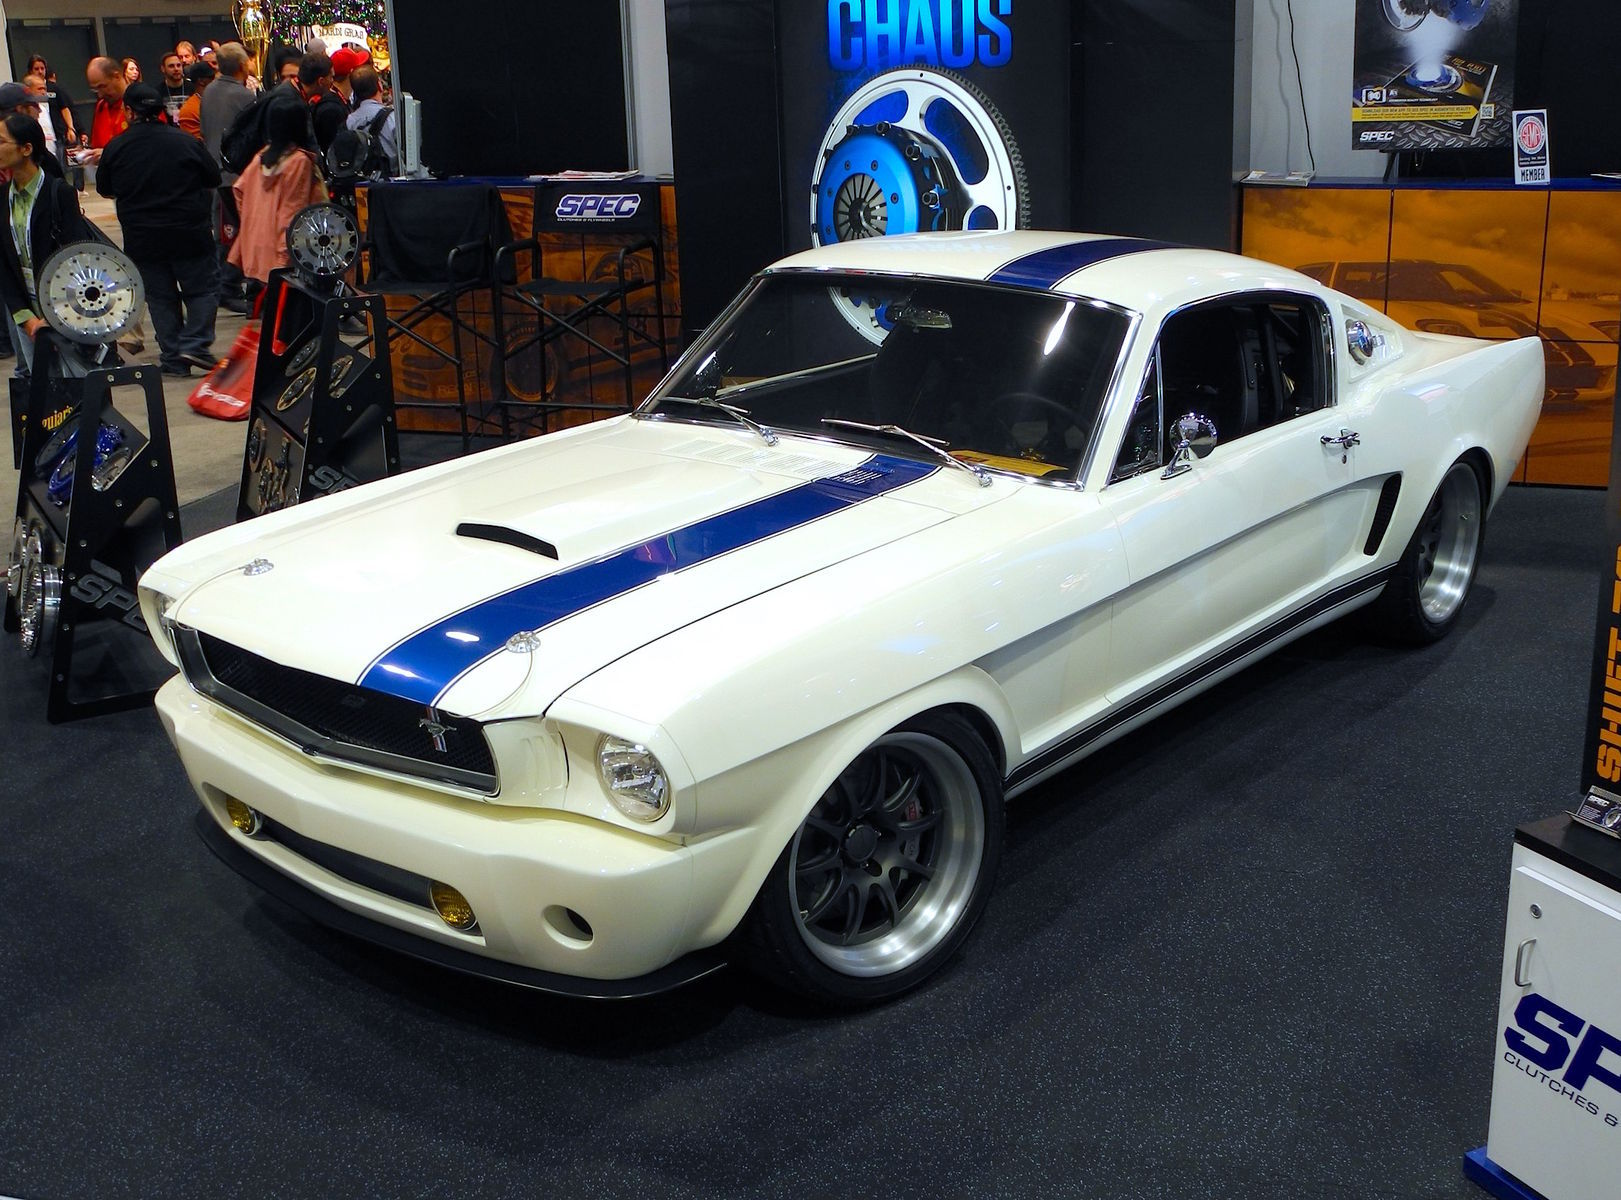 1965 Ford Mustang | Matt Alcala's Widebody 1965 Ford Mustang Fastback on Forgeline GZ3R Wheels - Stance Shot